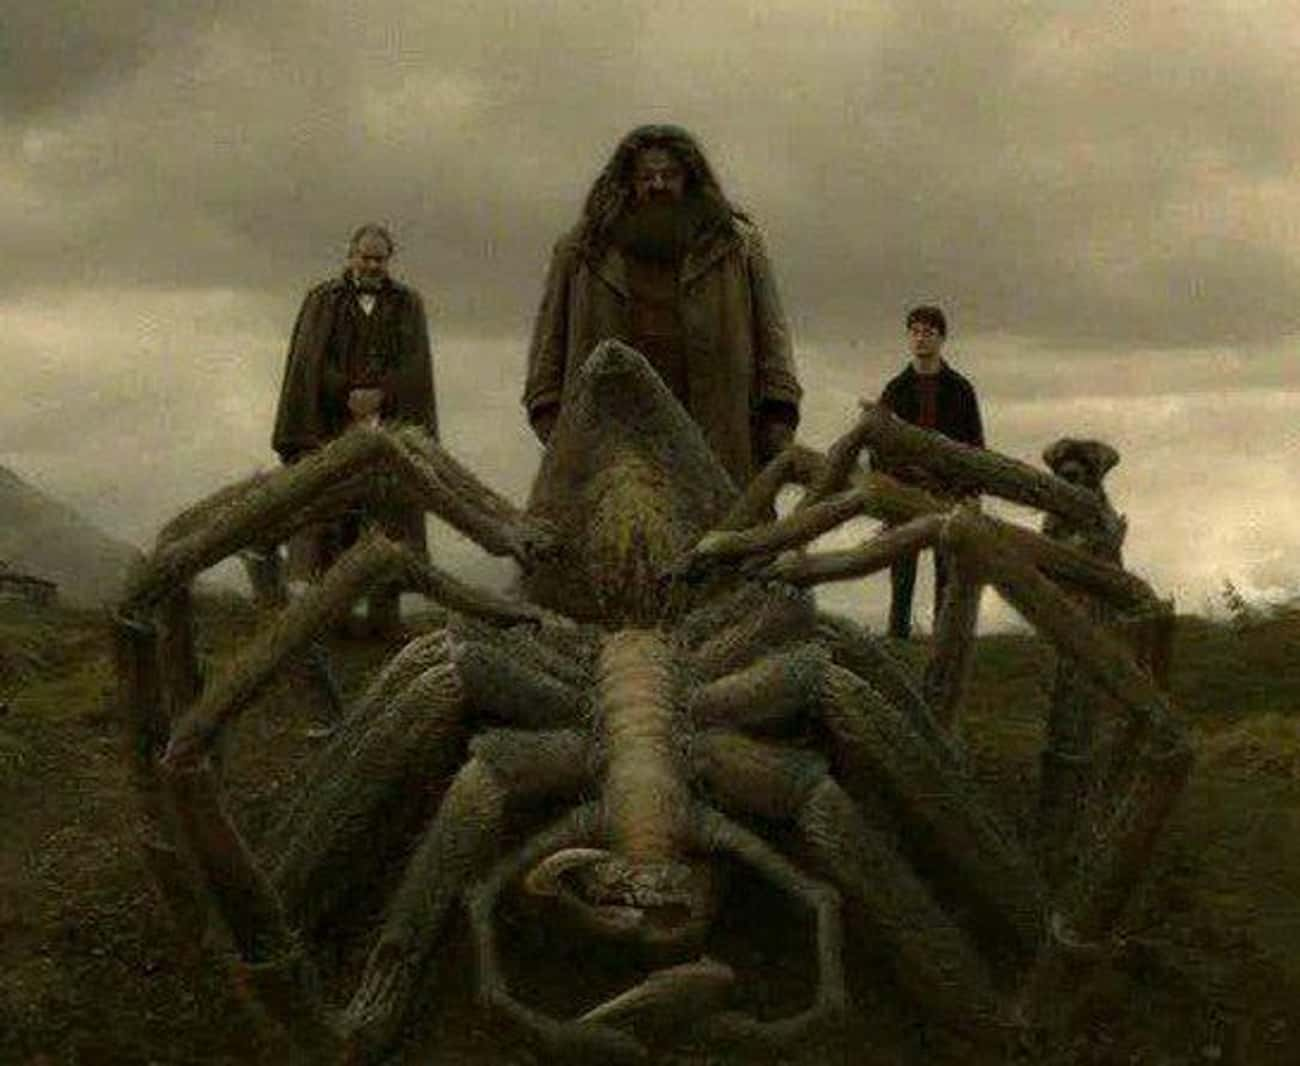 Did Hagrid Get Aragog From New is listed (or ranked) 2 on the list The Craziest Harry Potter Fan Theories That Could Be True